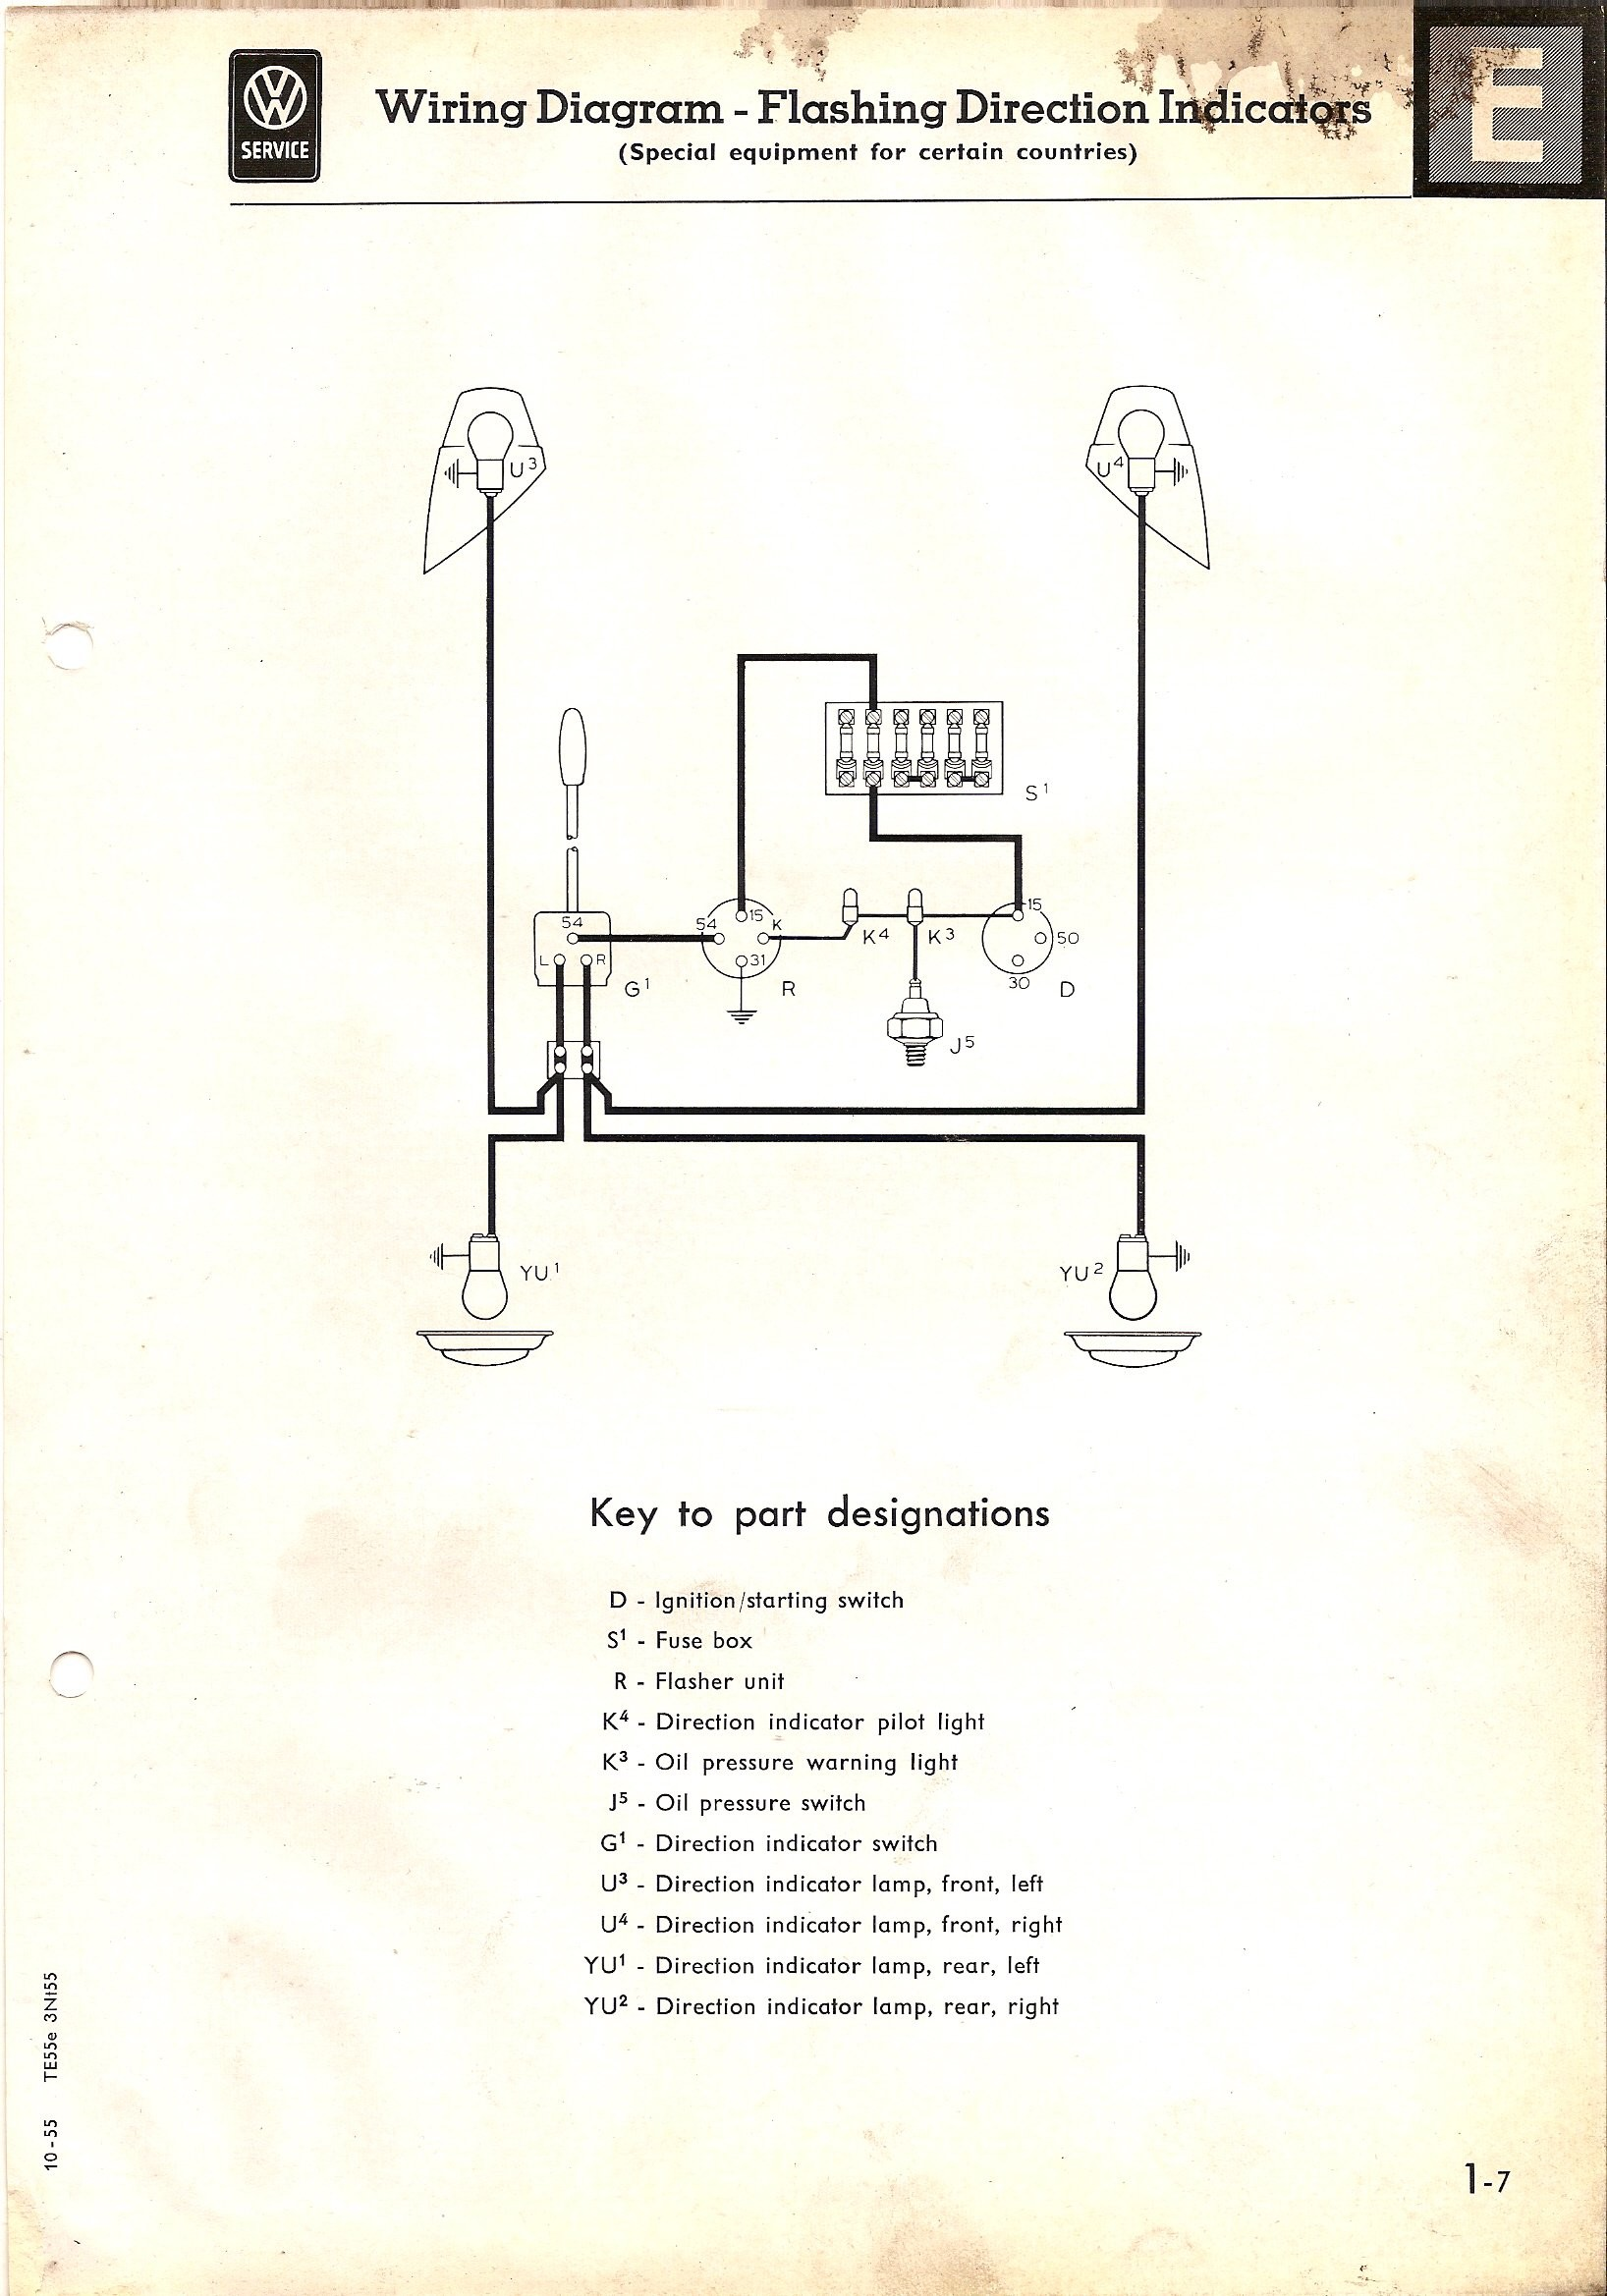 Golf Cart Turn Signal Wiring Diagram thesamba Type 2 Wiring Diagrams Of Golf Cart Turn Signal Wiring Diagram 1951 ford Brake Wiring Diagram Another Blog About Wiring Diagram •